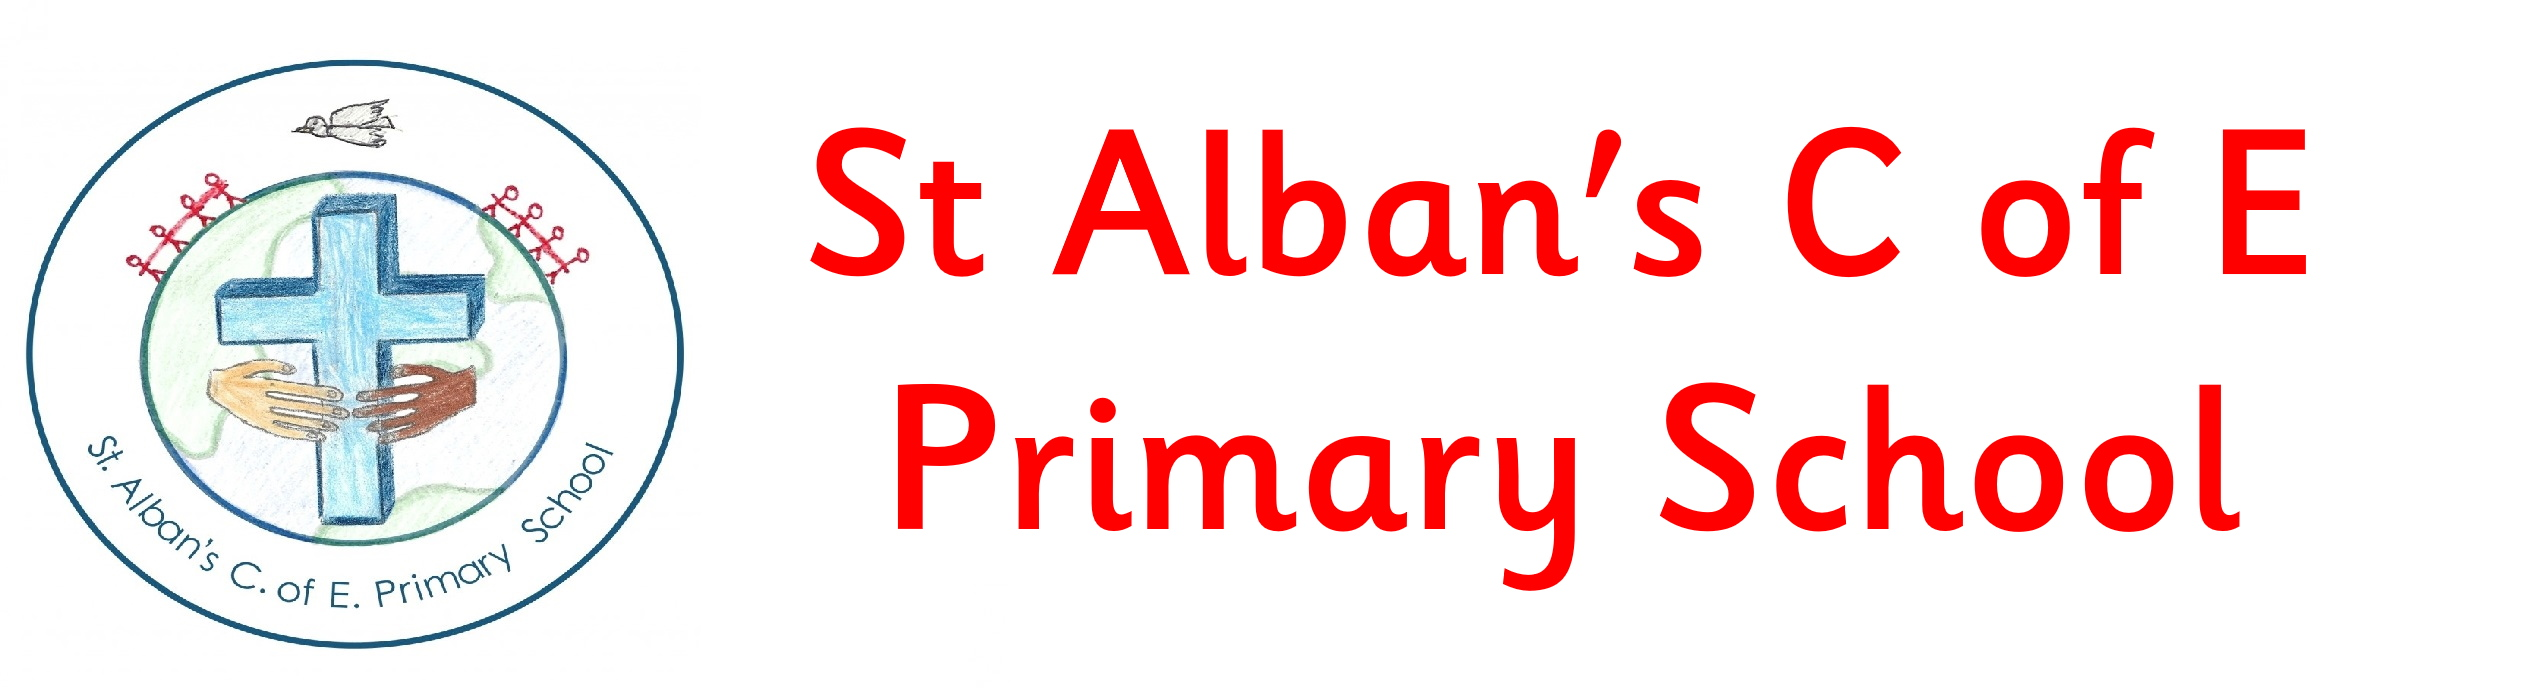 Wickersley St Alban's CE Primary